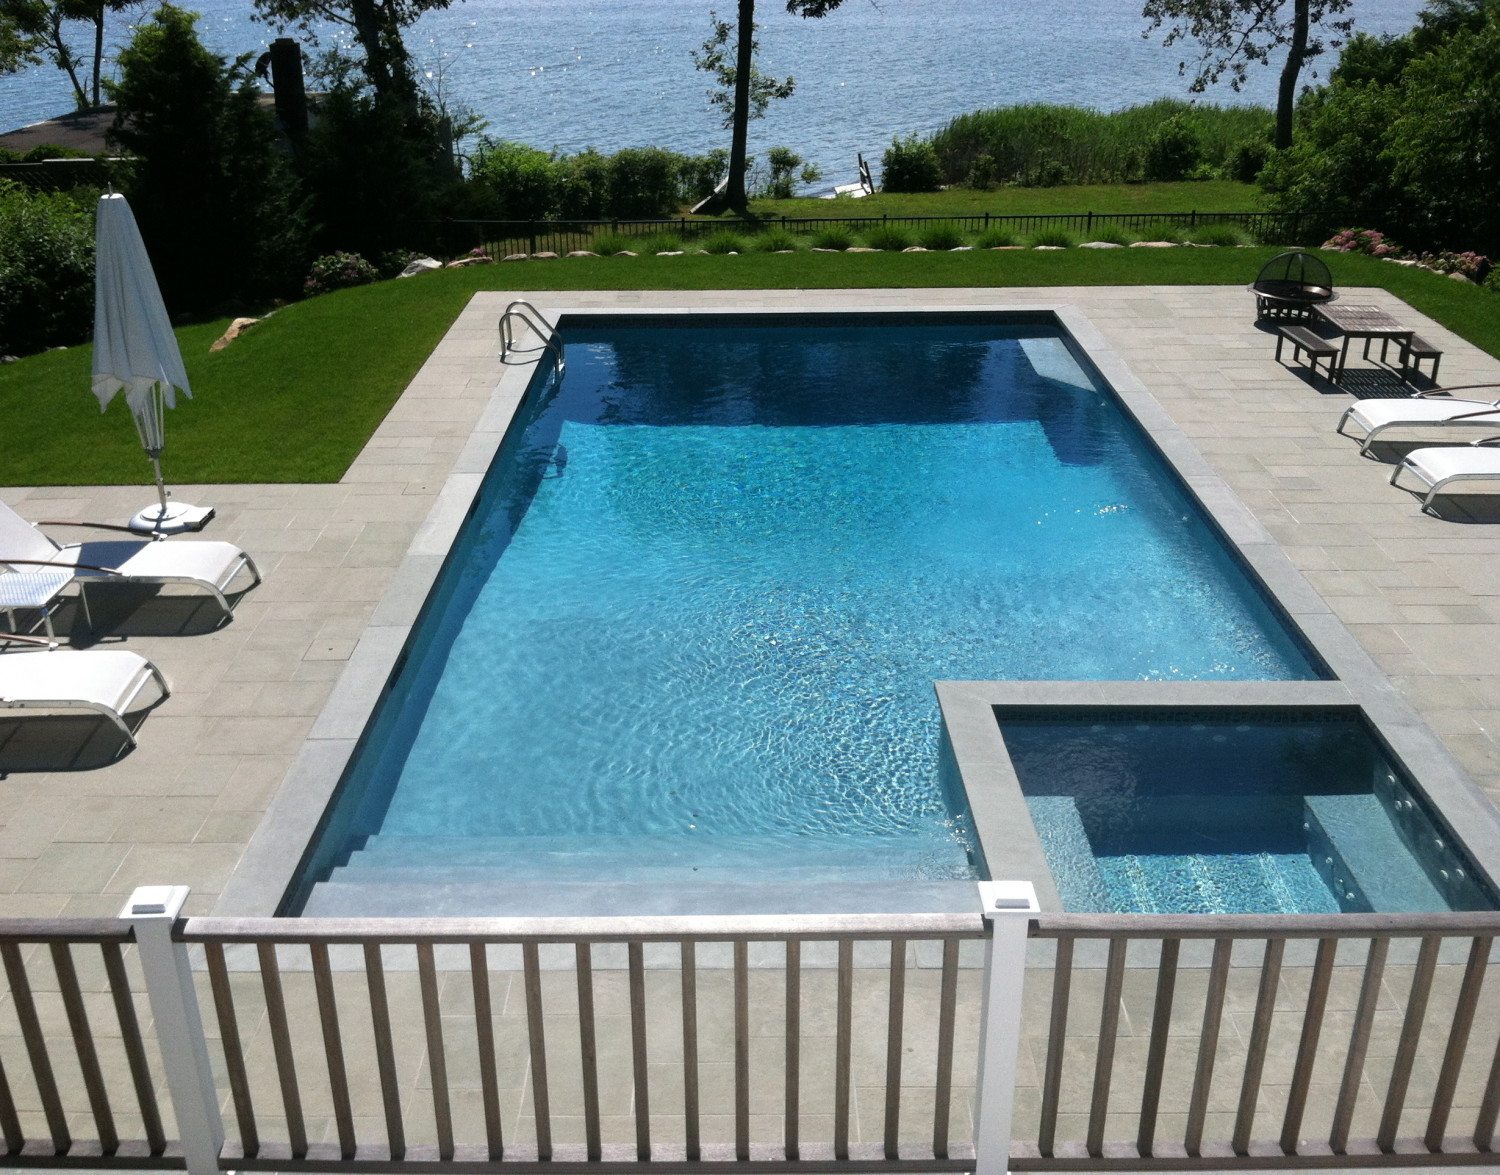 Pool Overflow Spa Amp Stone Patio In Wainscott Patricks